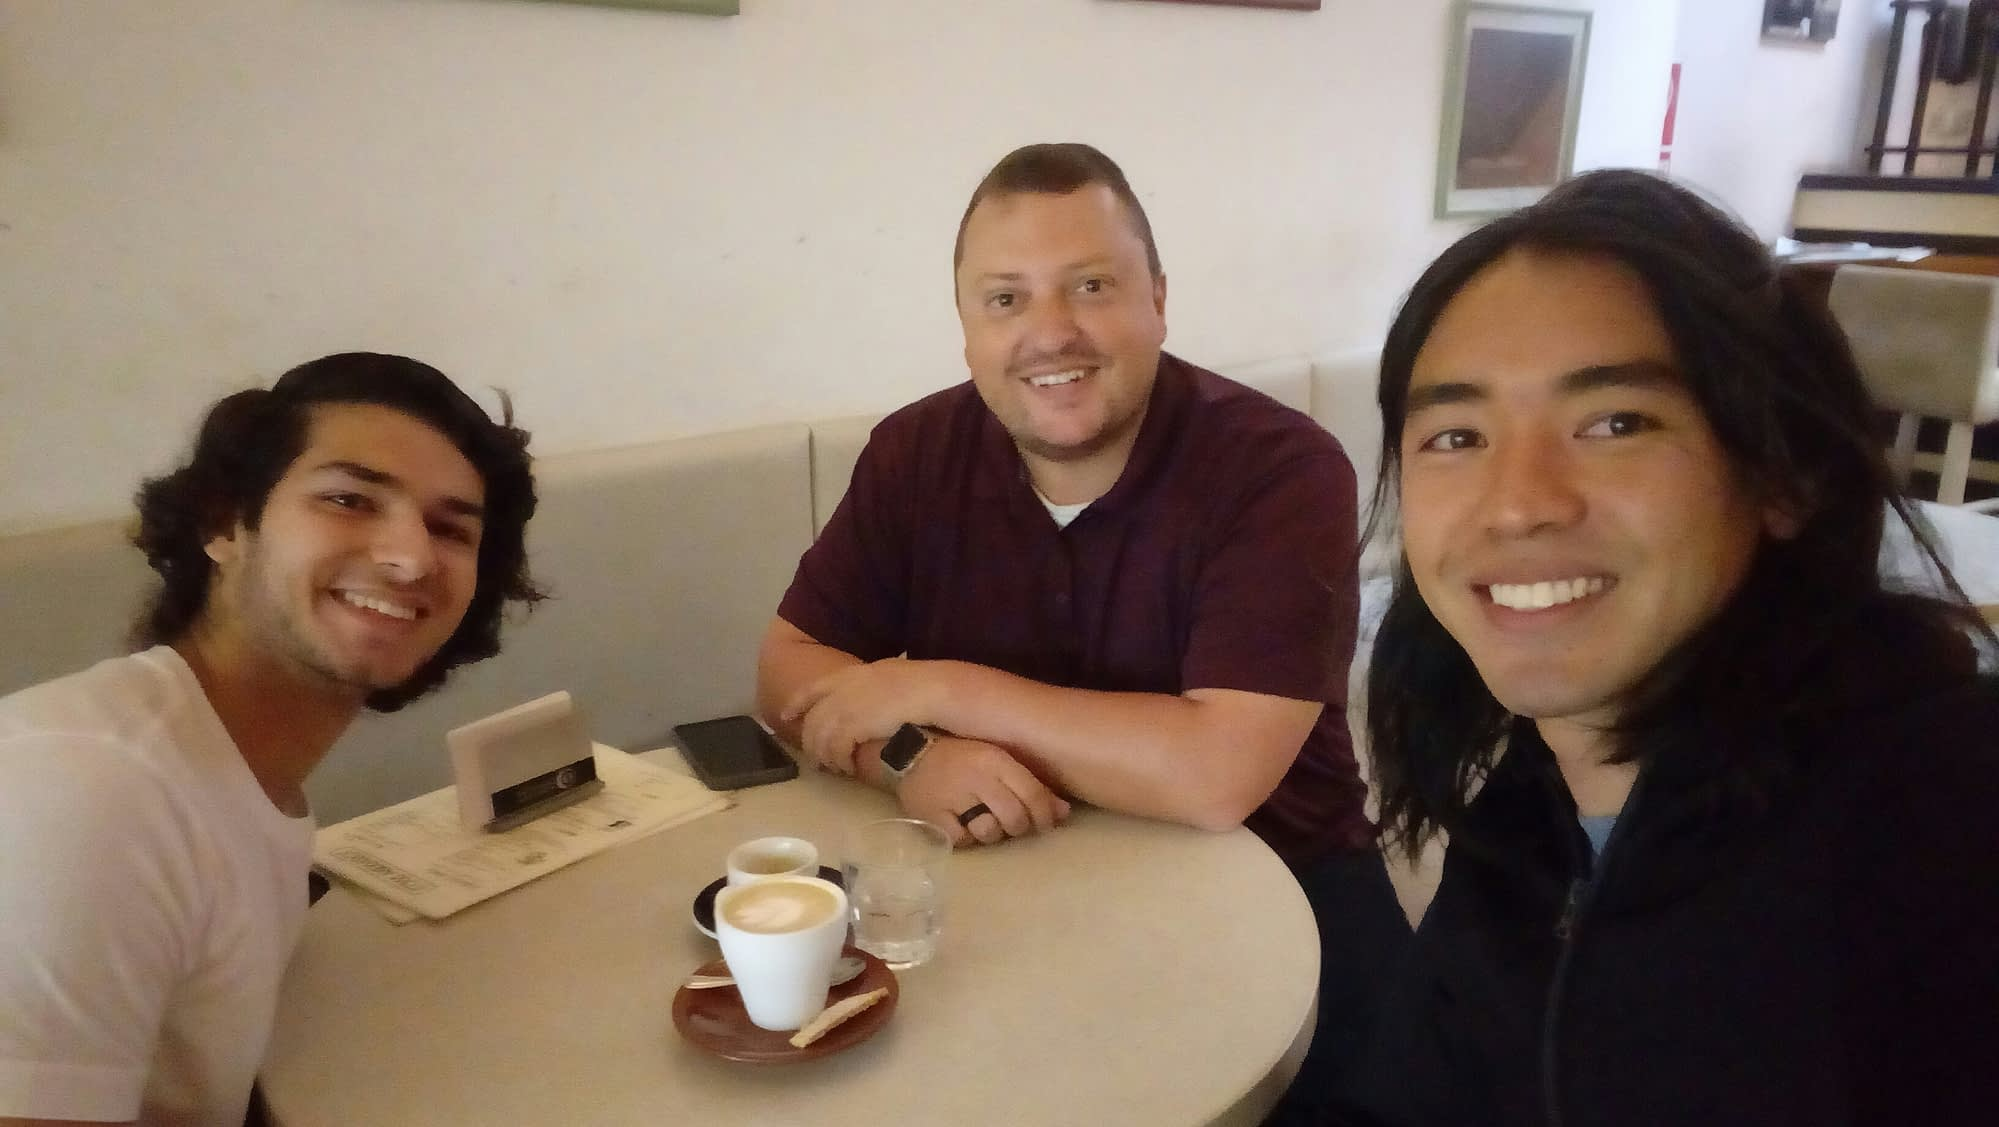 Pepe, Varun, and Jeremy at a coffee shop tasting local coffee.